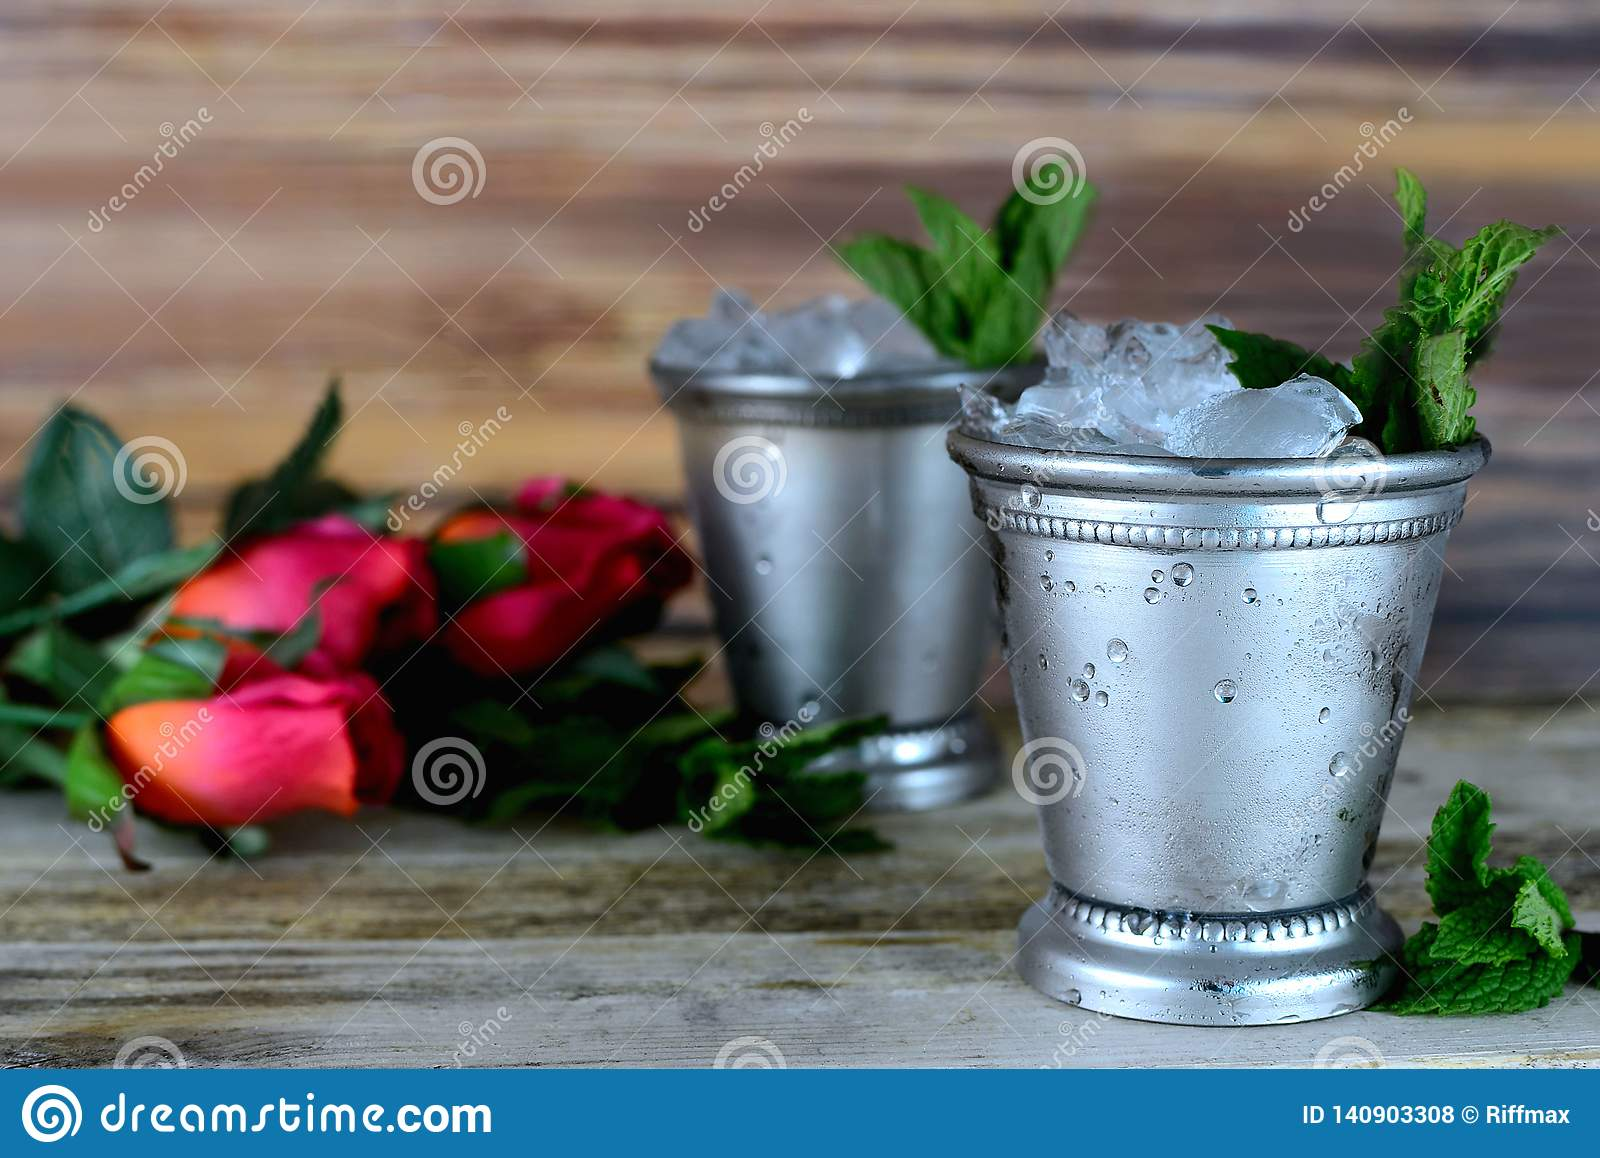 Image for Kentucky Derby in May showing two silver mint julep cups with crushed ice and fresh mint in a rustic setting